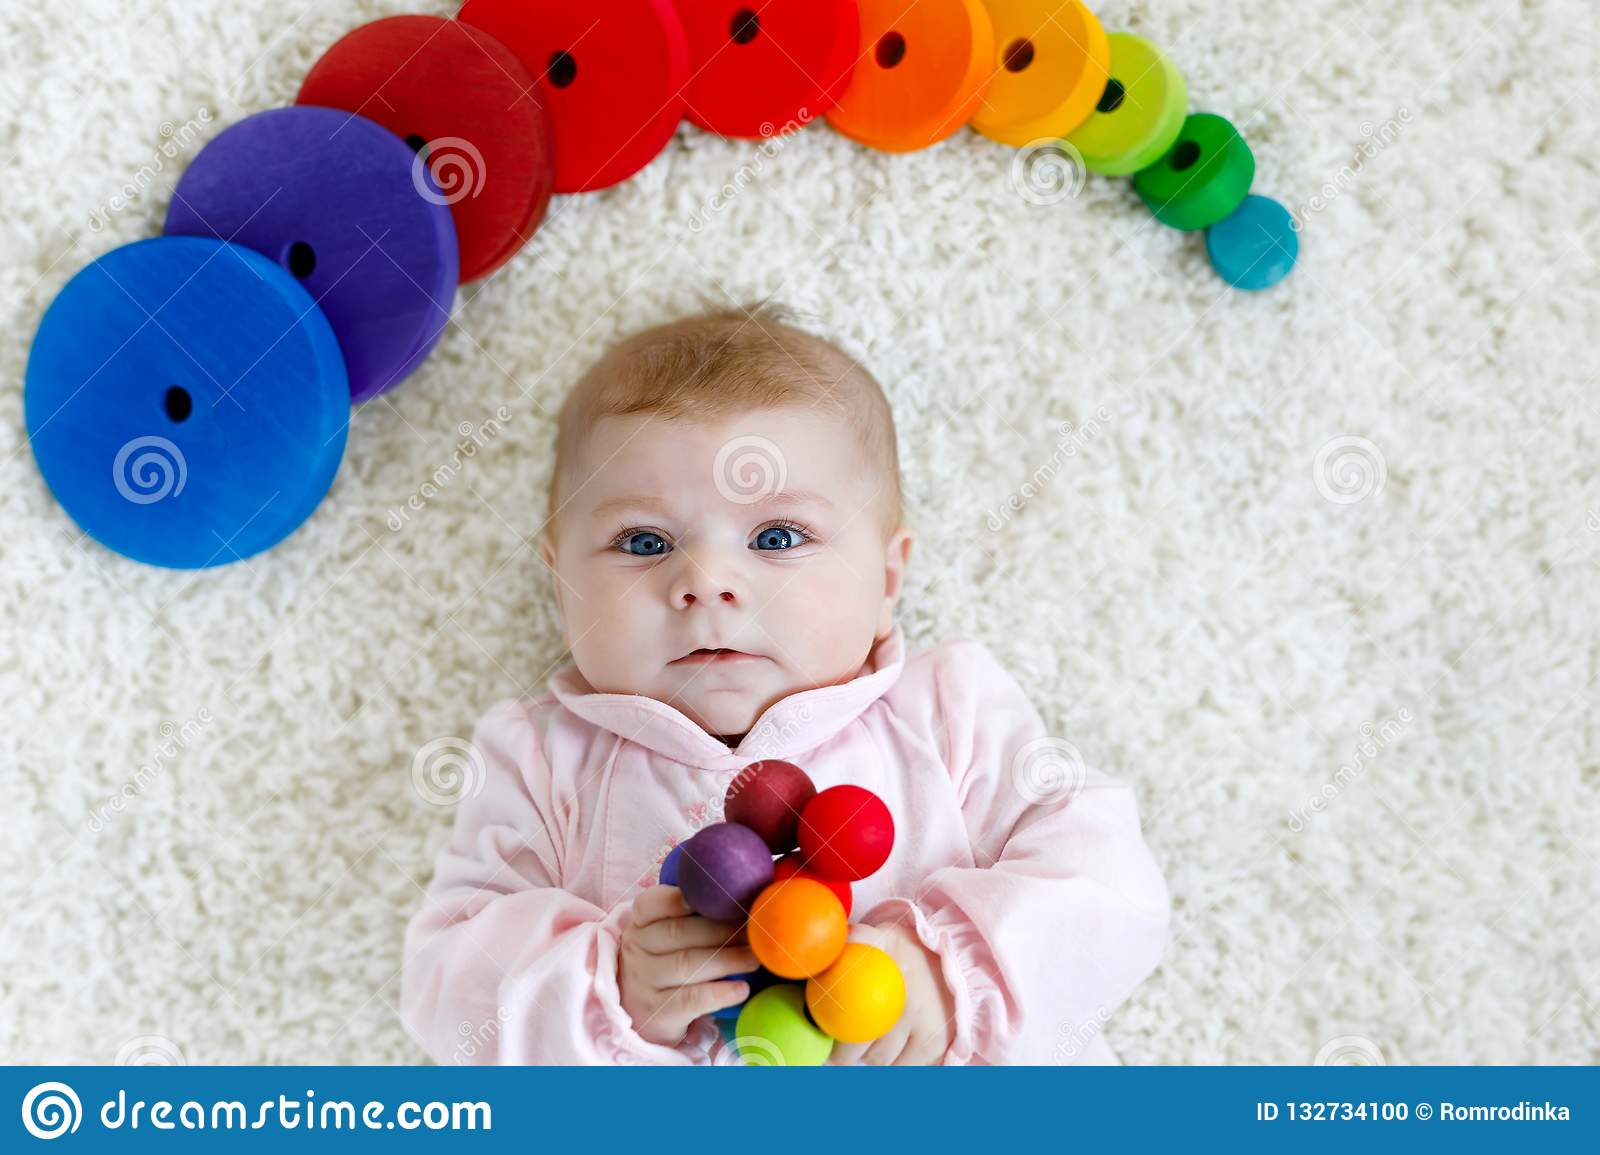 a13ebfd640f Cute adorable newborn baby playing with colorful wooden rattle toy ball on white  background. New